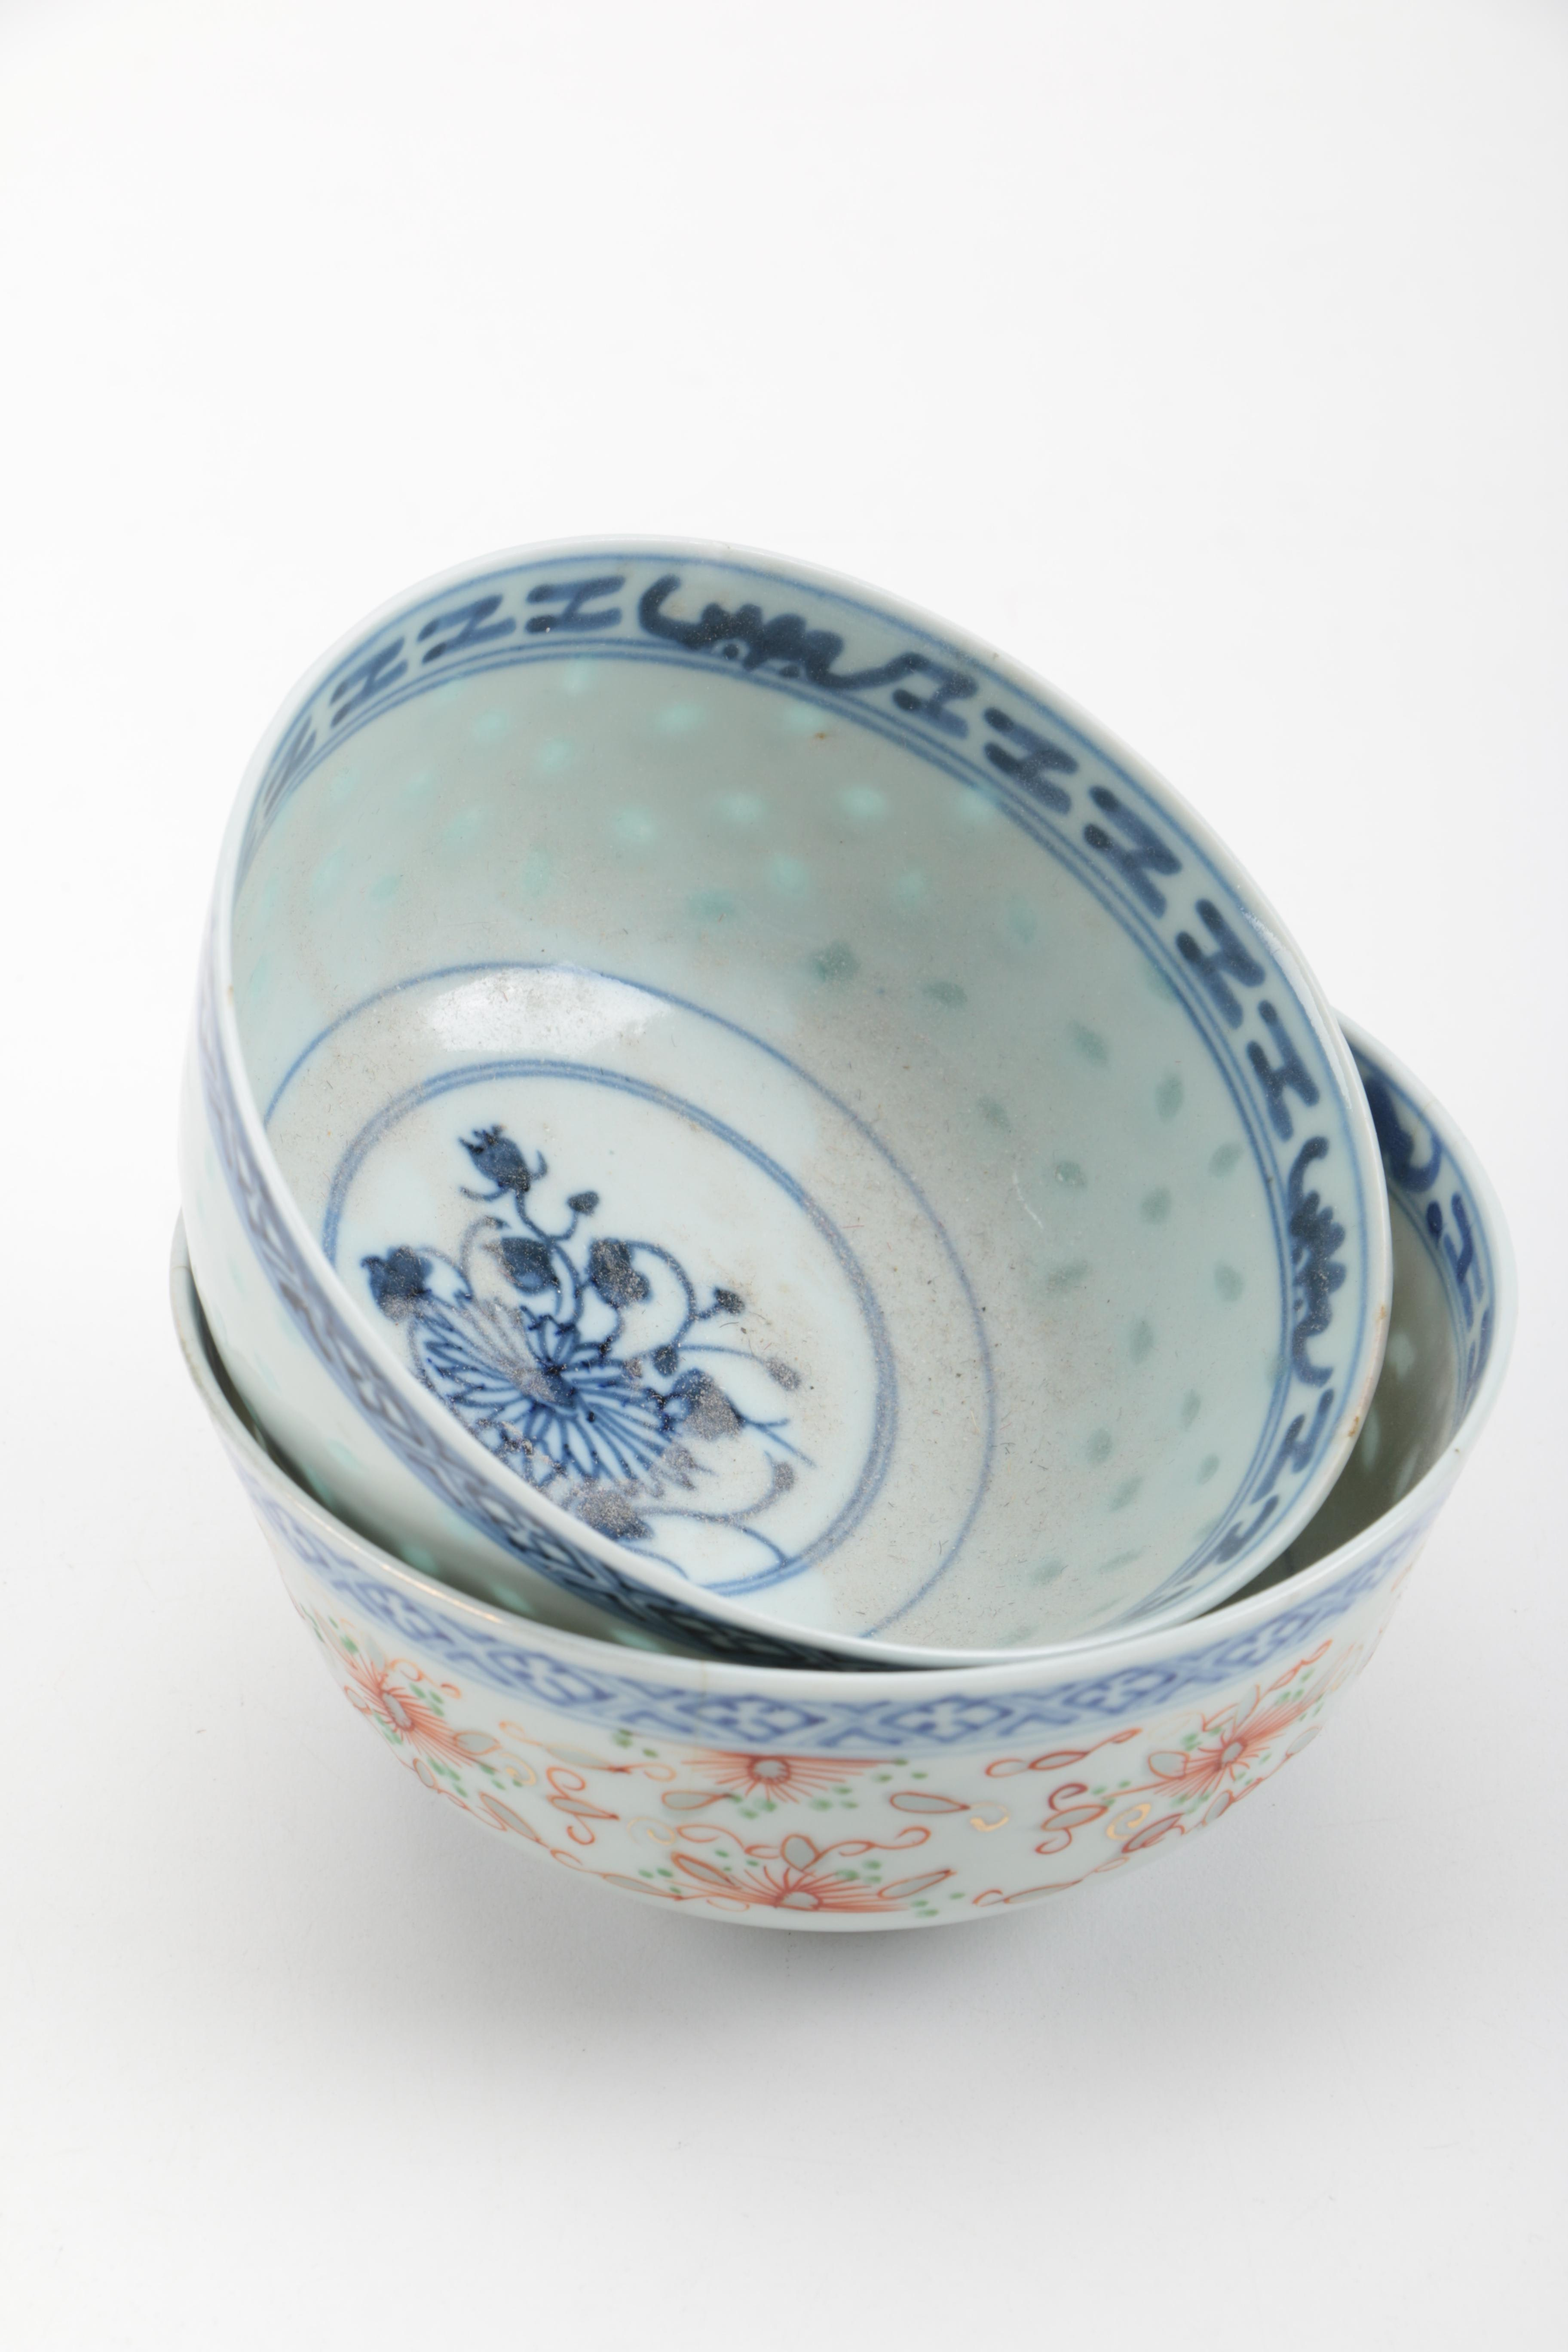 Vintage Hand Painted Blue and White Chinese Porcelain Bowls